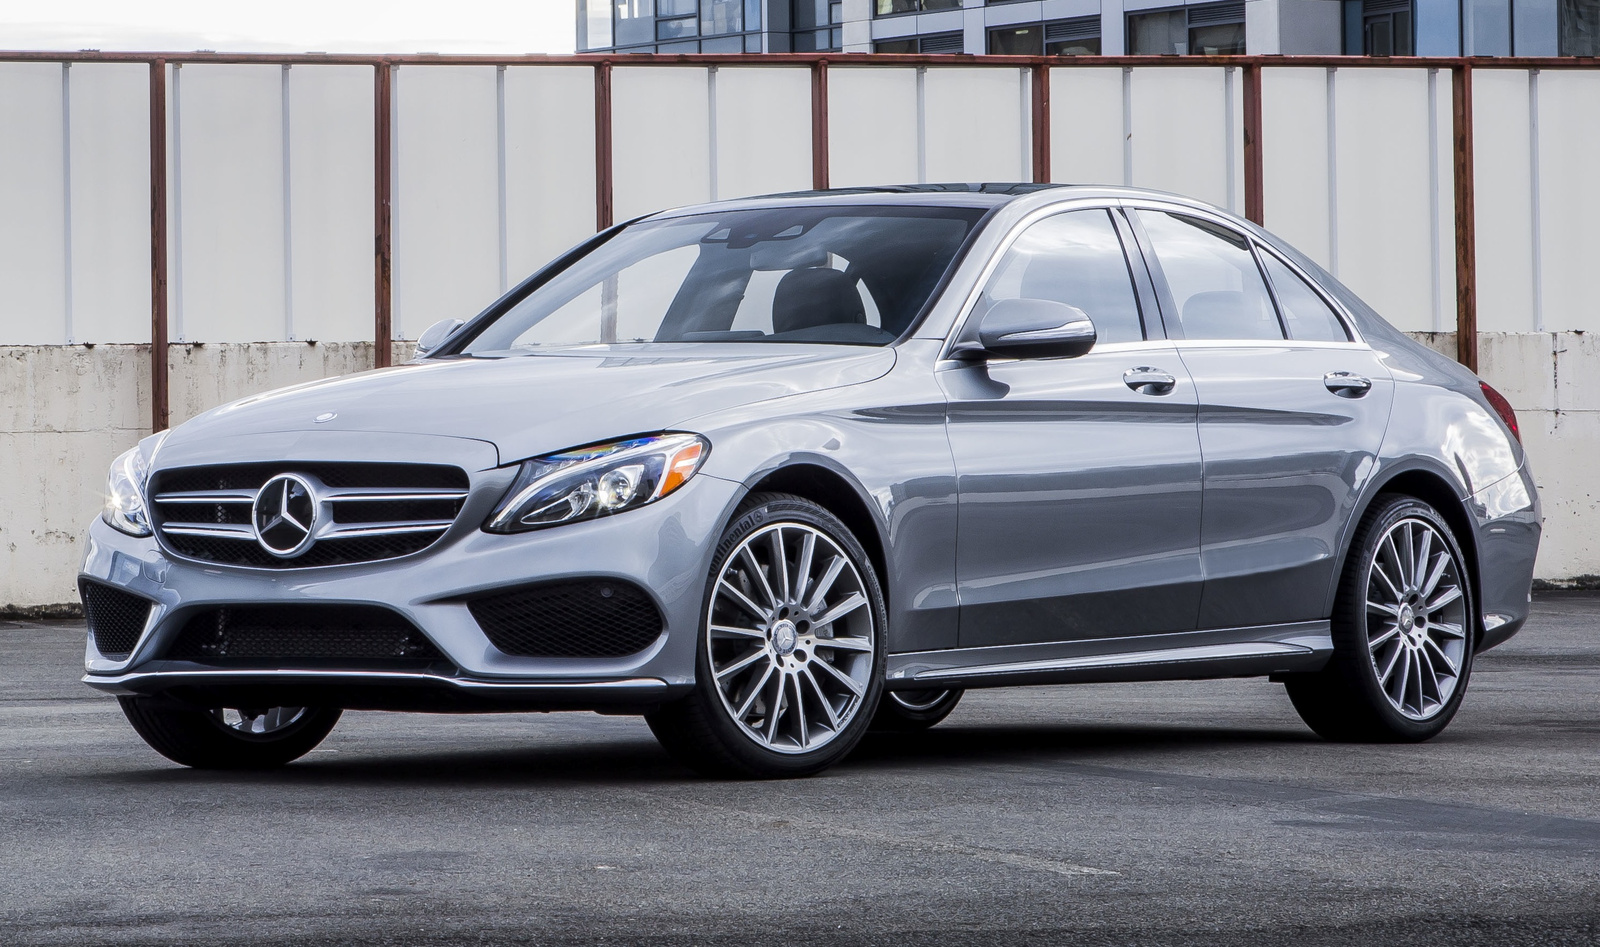 2015 mercedes benz c class review cargurus for Mercedes benz class 2015